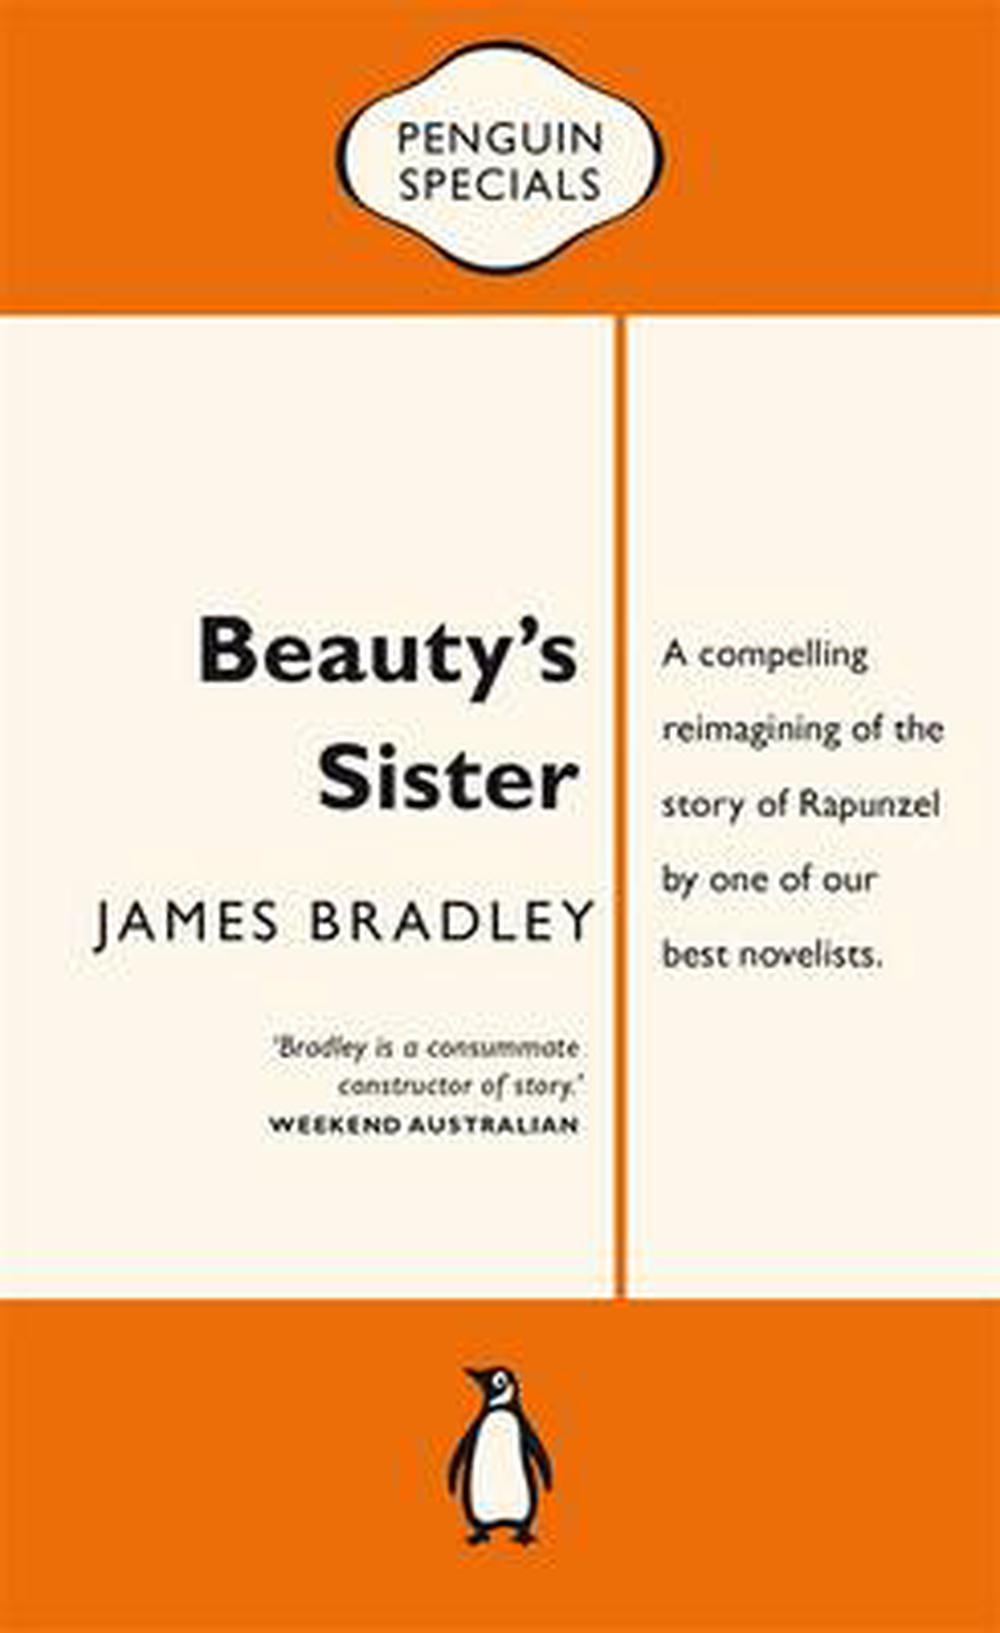 Beauty's Sister: Penguin Special